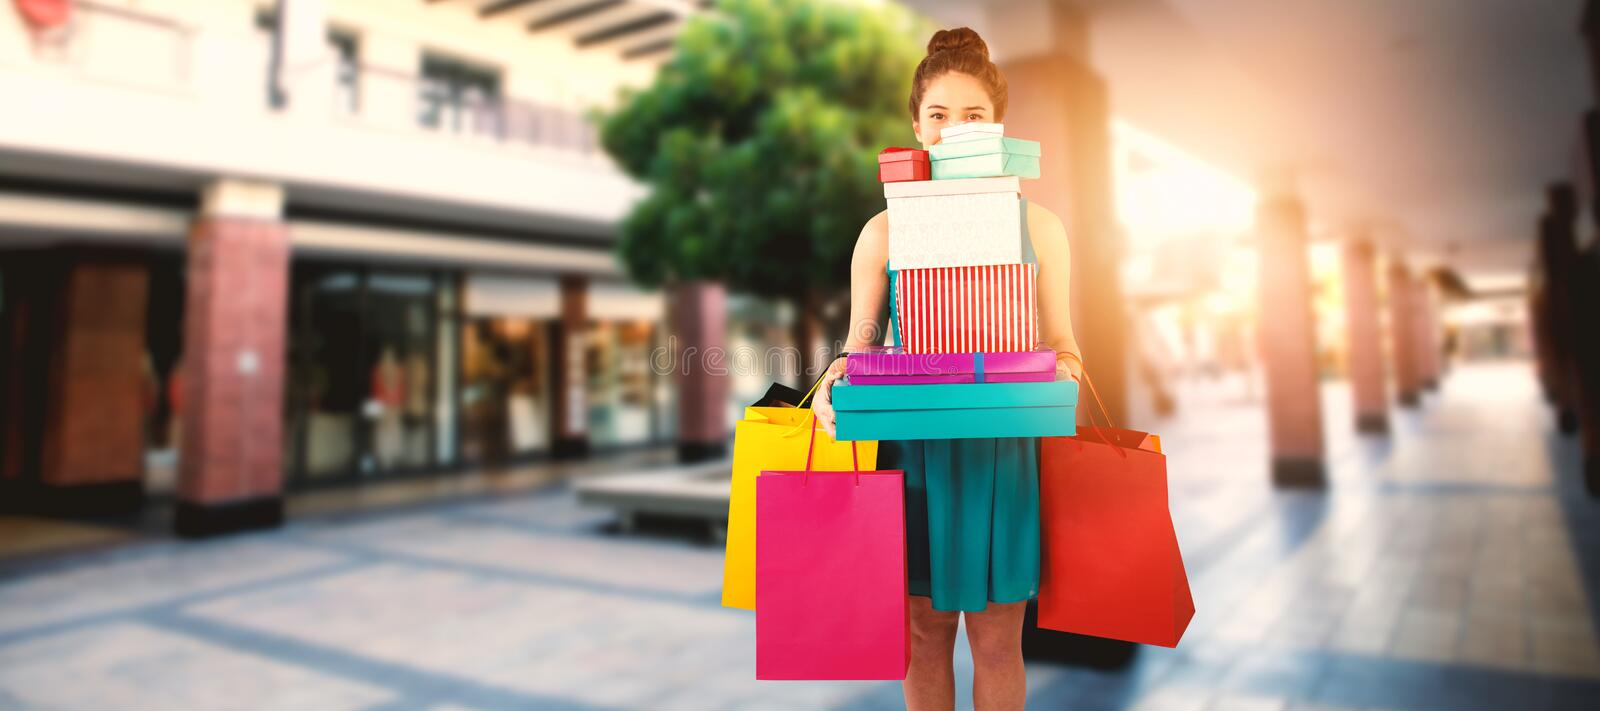 Composite image of women holding shopping bag royalty free stock images